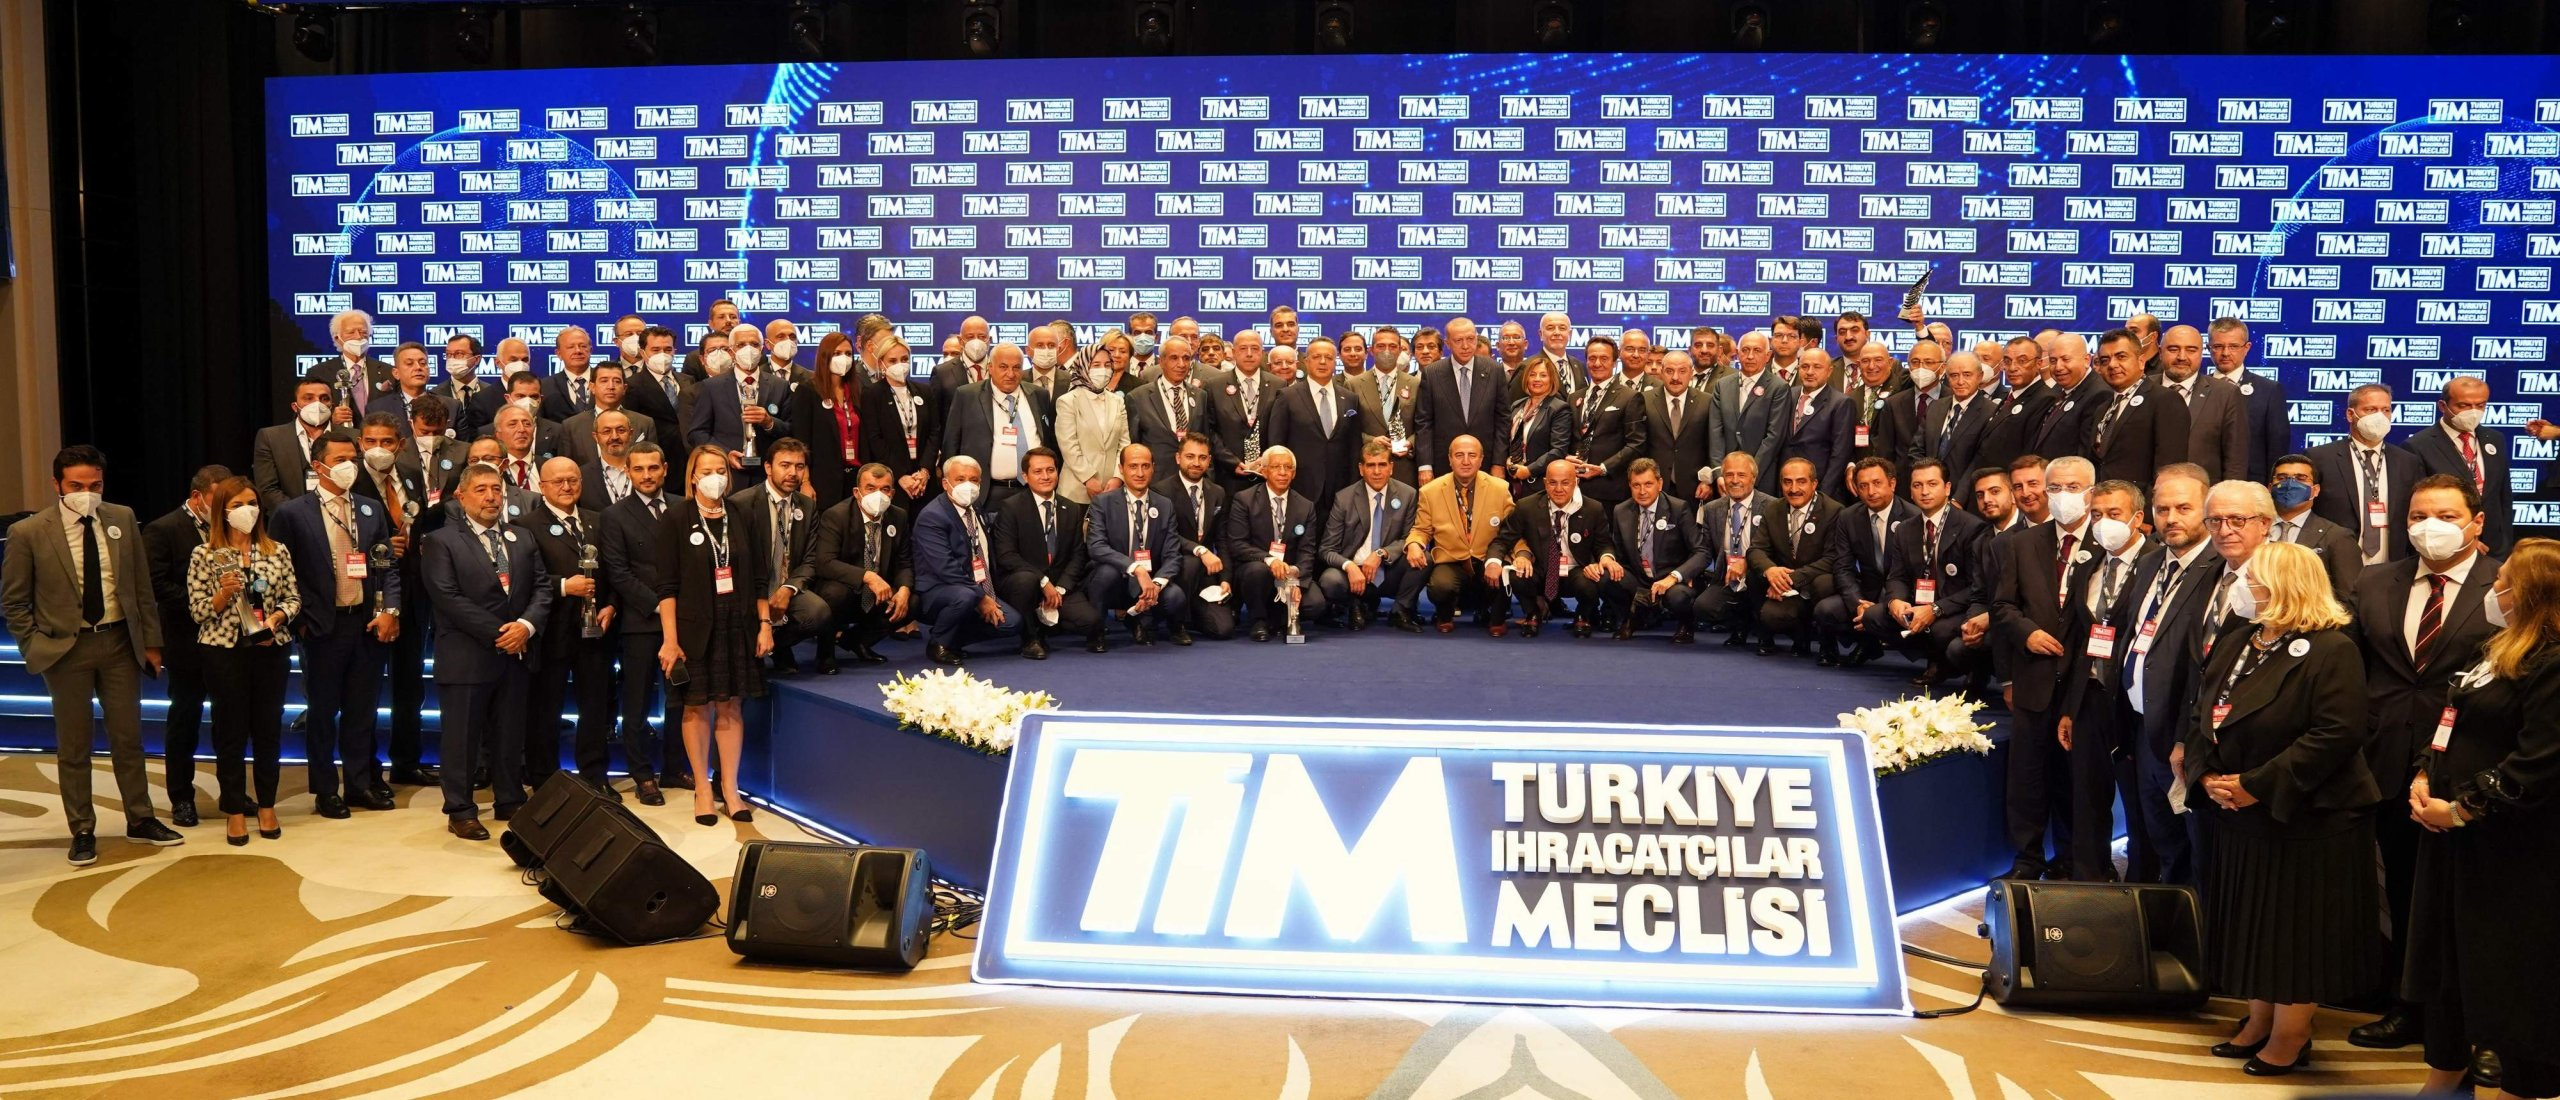 New strategy to boost Turkish exports in remote markets: Erdoğan